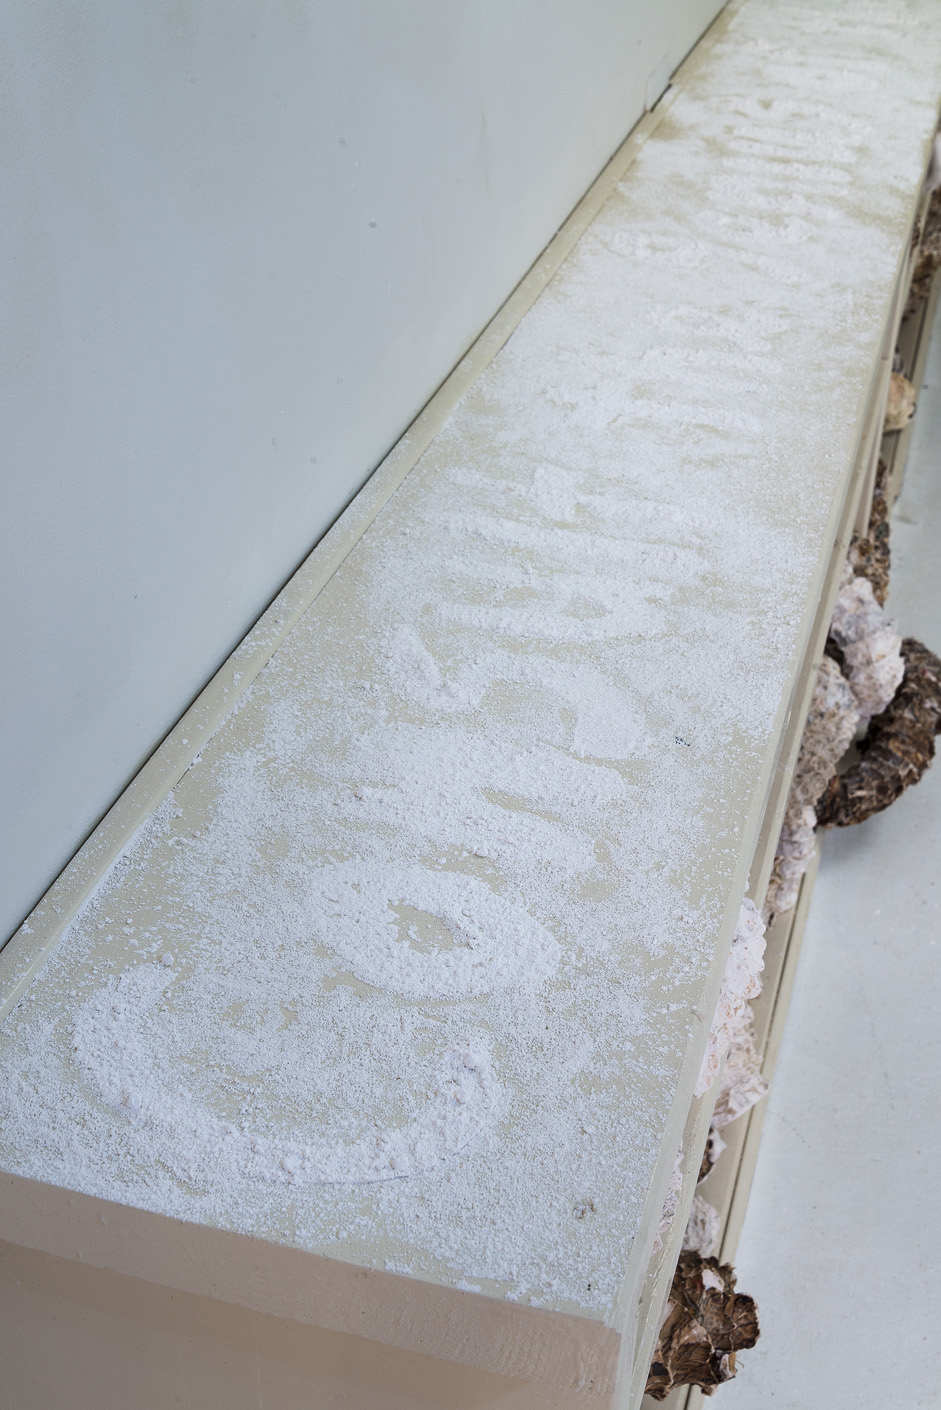 """Installation detail of bookcase surface, text from Wes Jackson stenciled in powdered plaster """"Consult the genius of the place . . . nature as measure"""""""